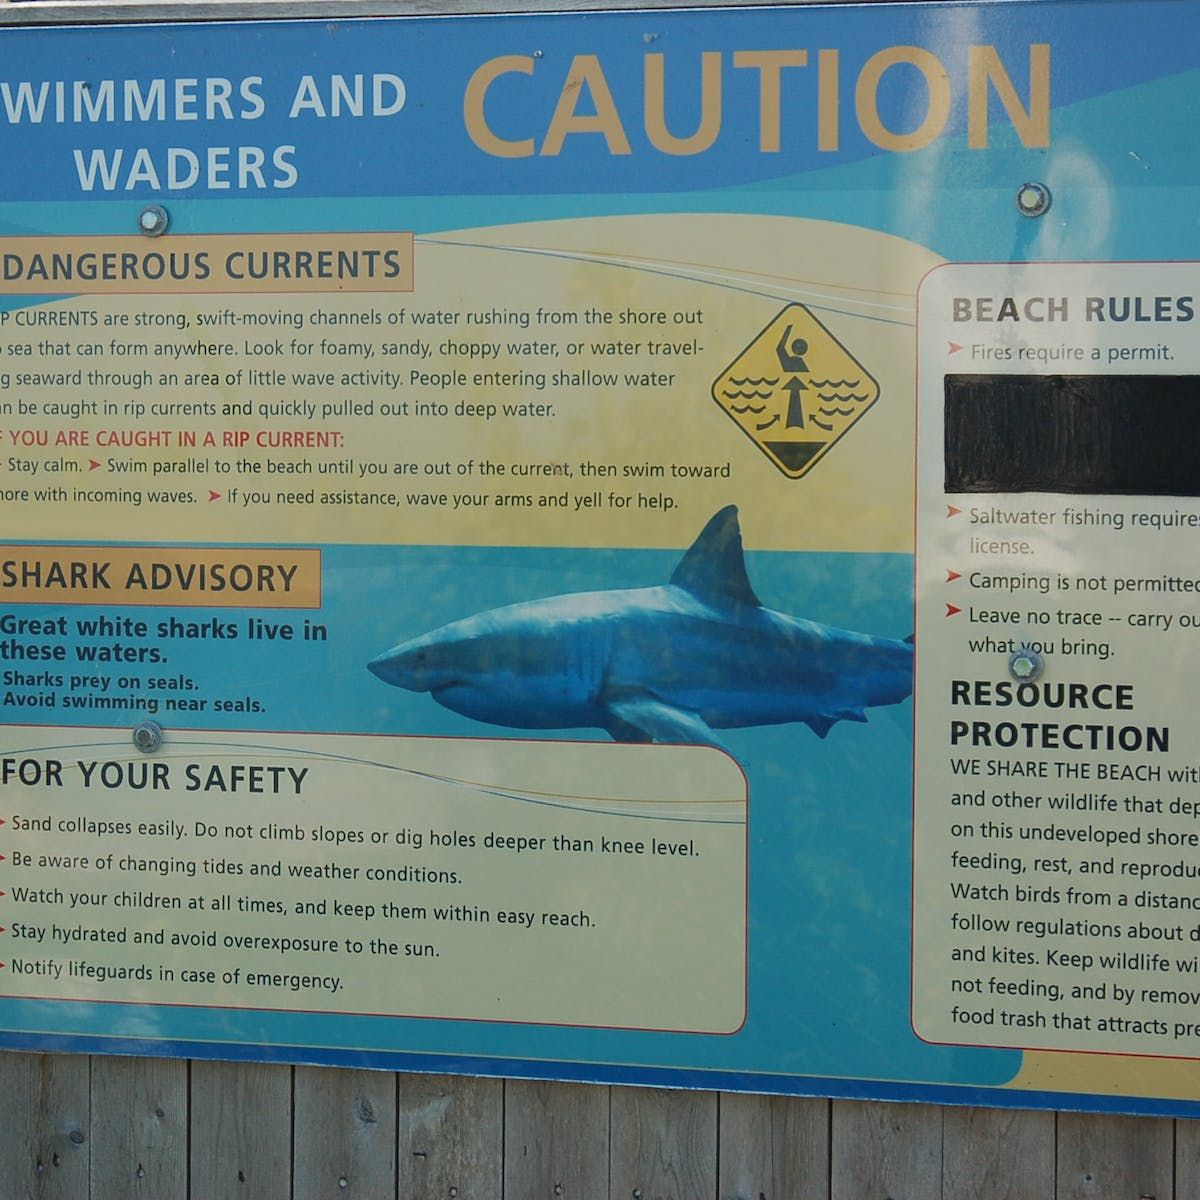 After a fatal shark attack on Cape Cod, will the reaction be